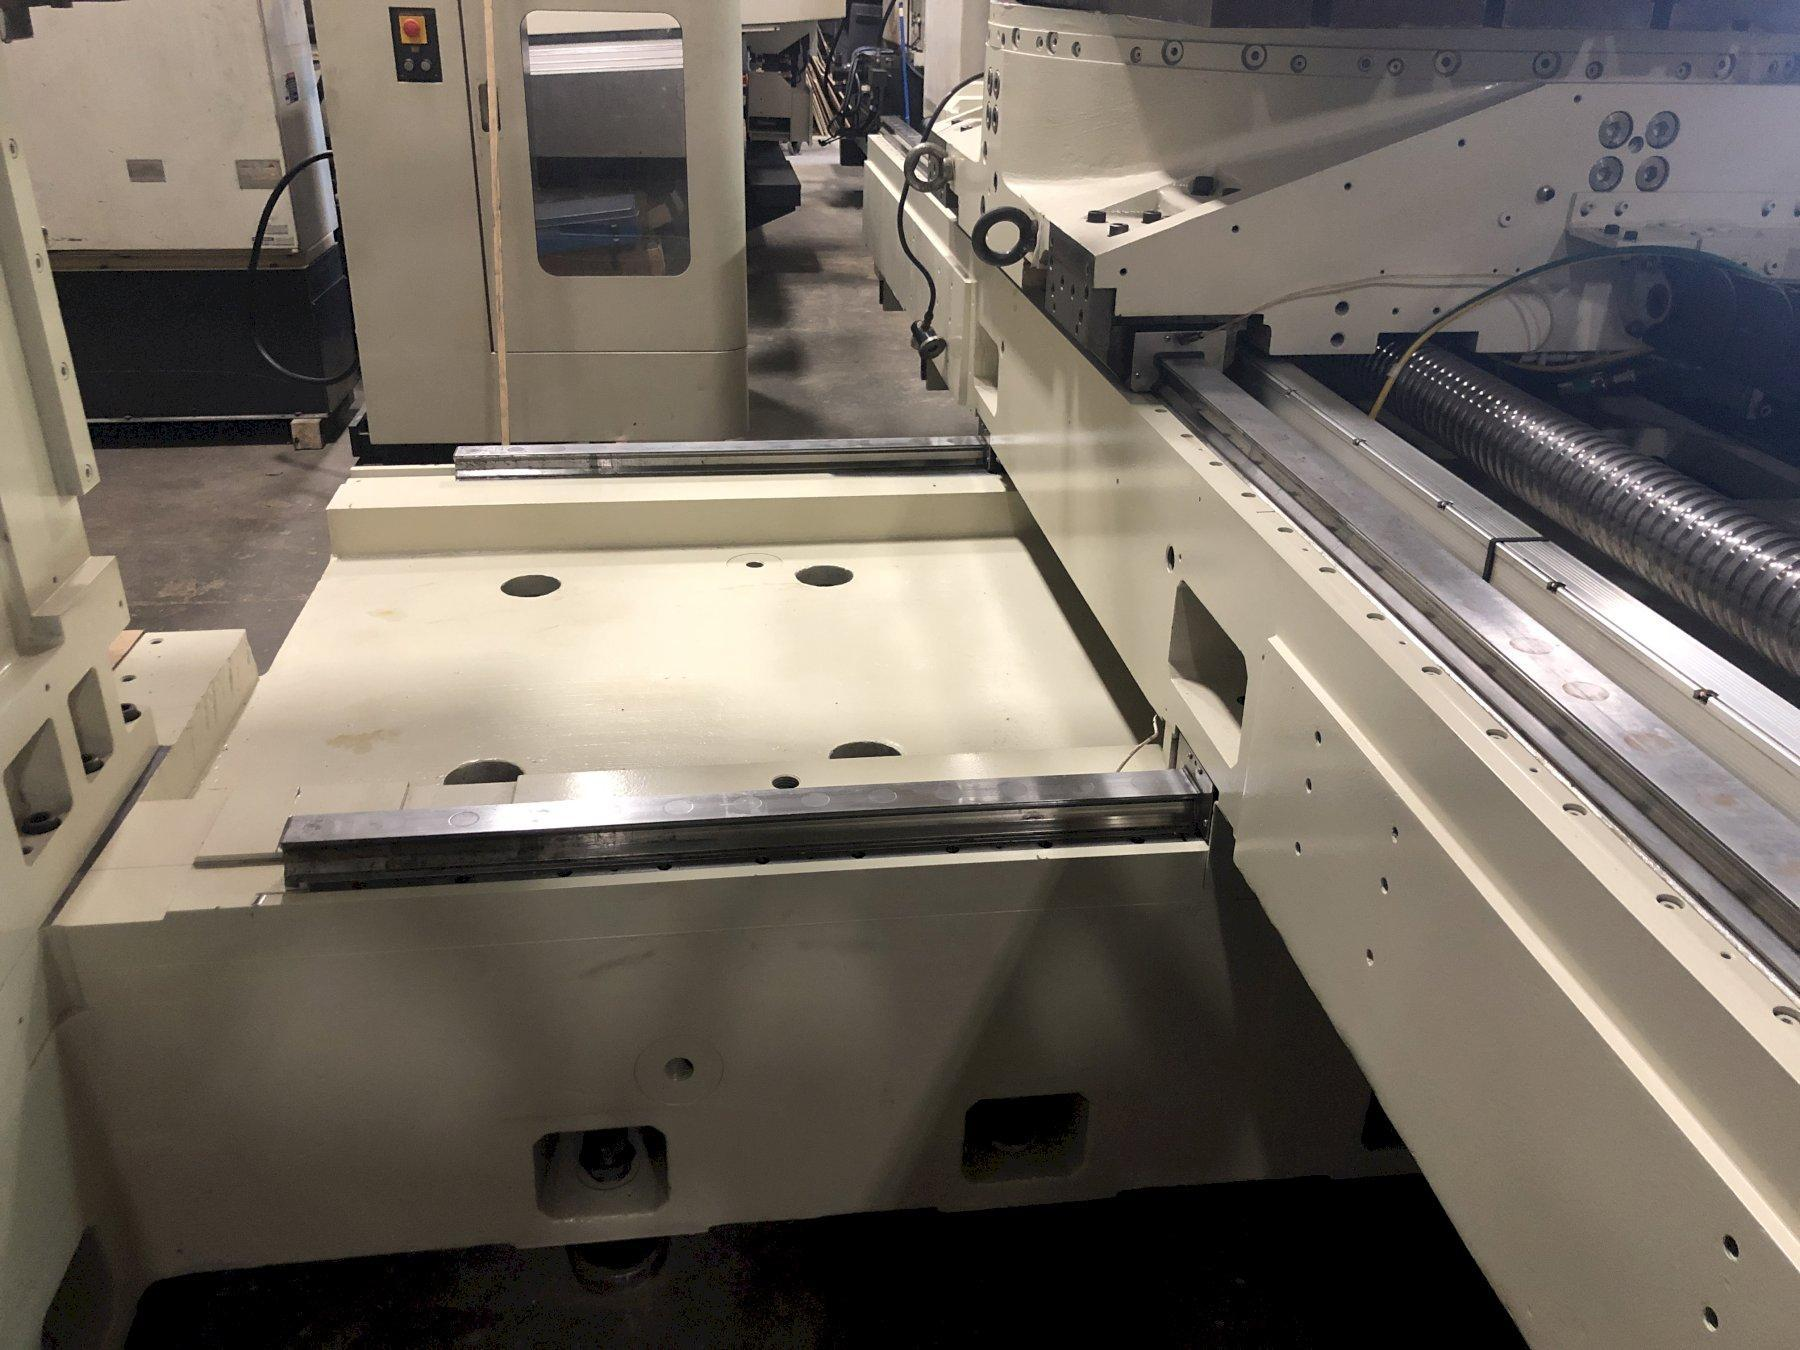 "GIDDINGS AND LEWIS RT-1250 6.1"" CNC HORIZONTAL BORING MILL w/Siemens 840D Control, Full 4th Axis"